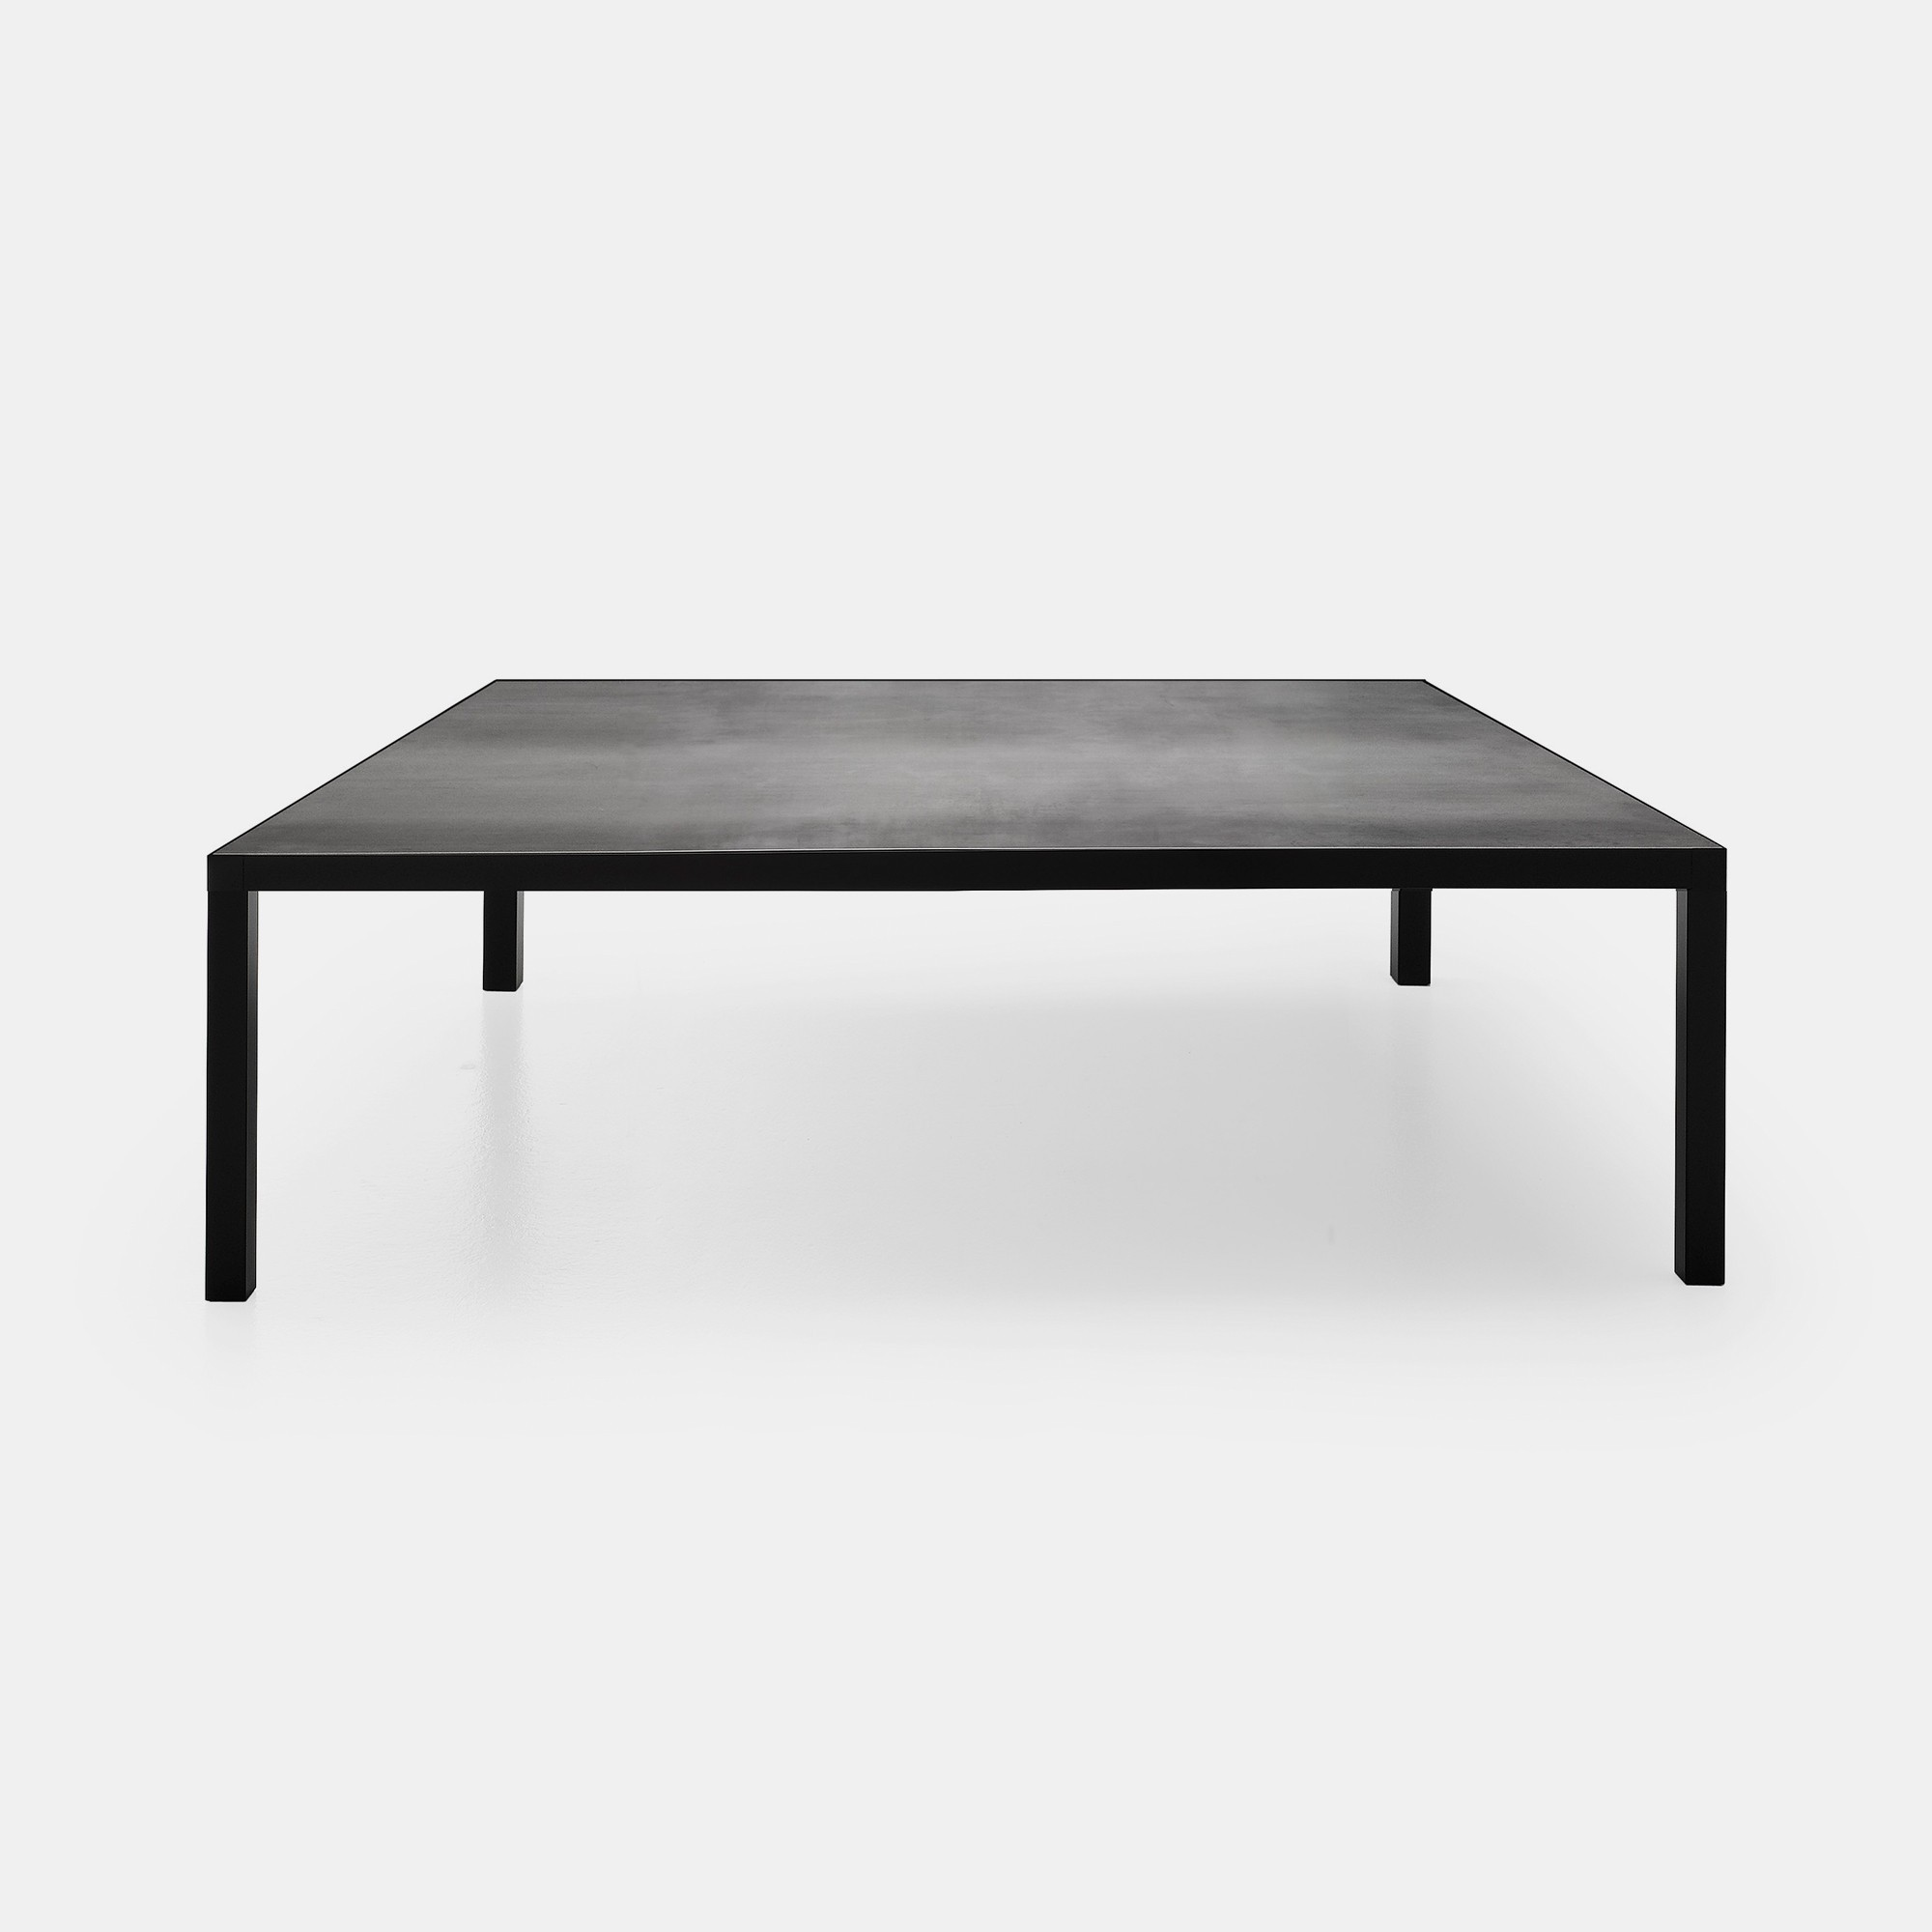 LIM 3 0 Lightweigth coffee table with a rigorous design MDF Italia